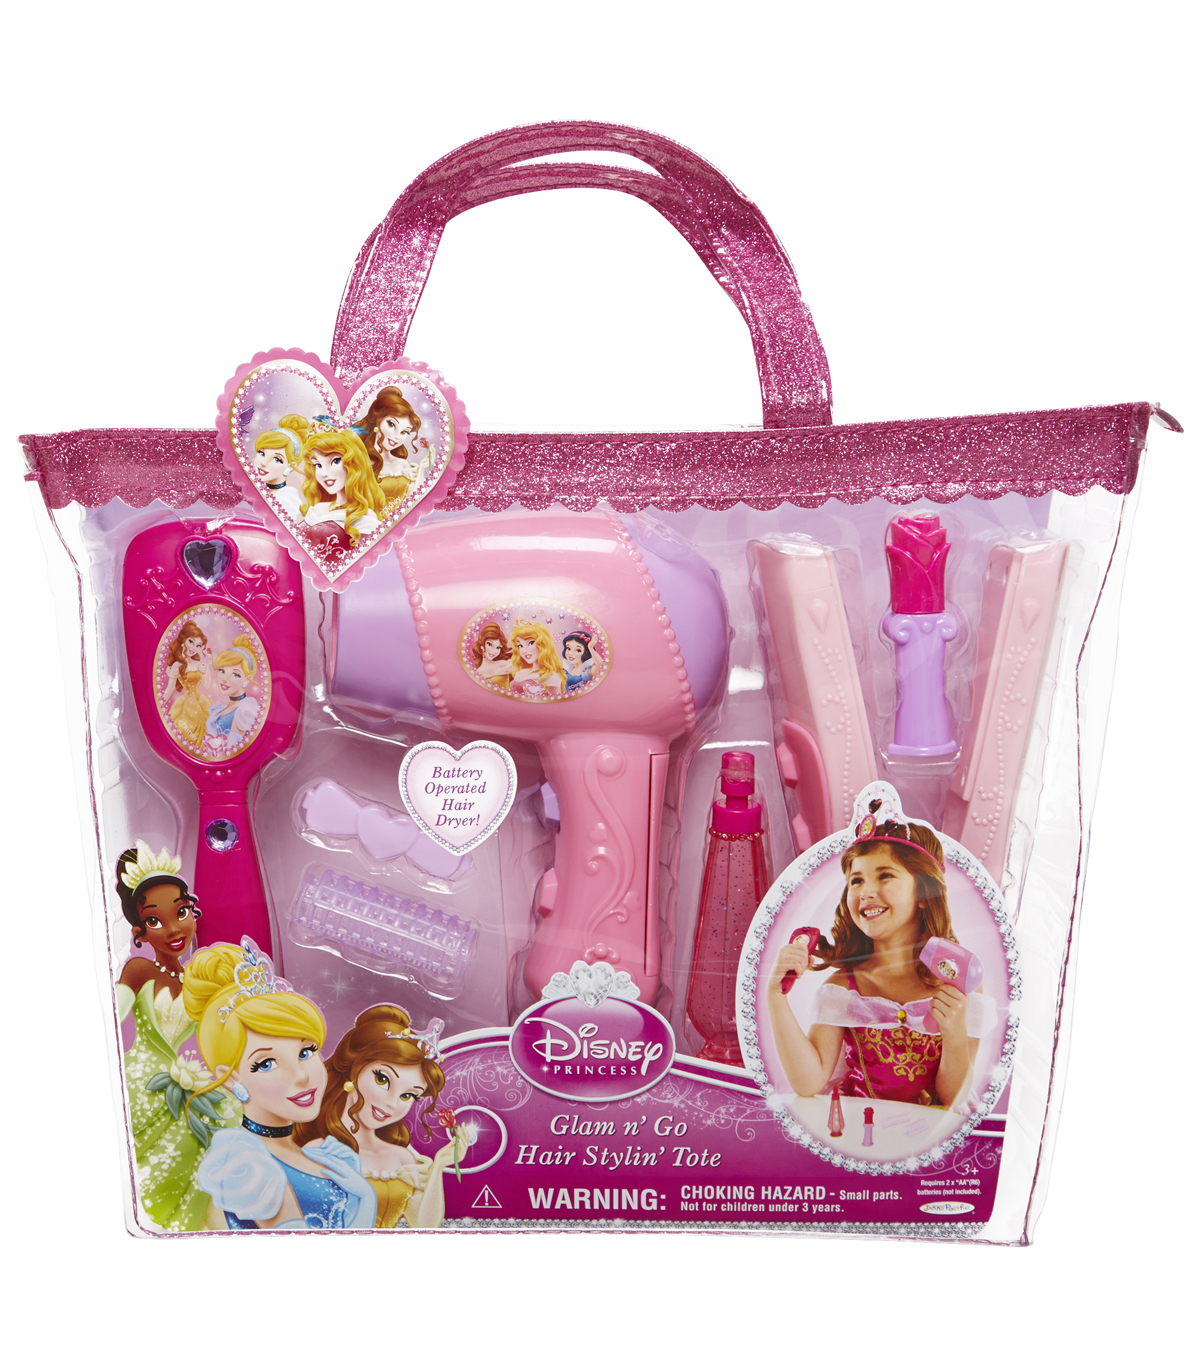 Disney Princess Glam Hair Styling Tote